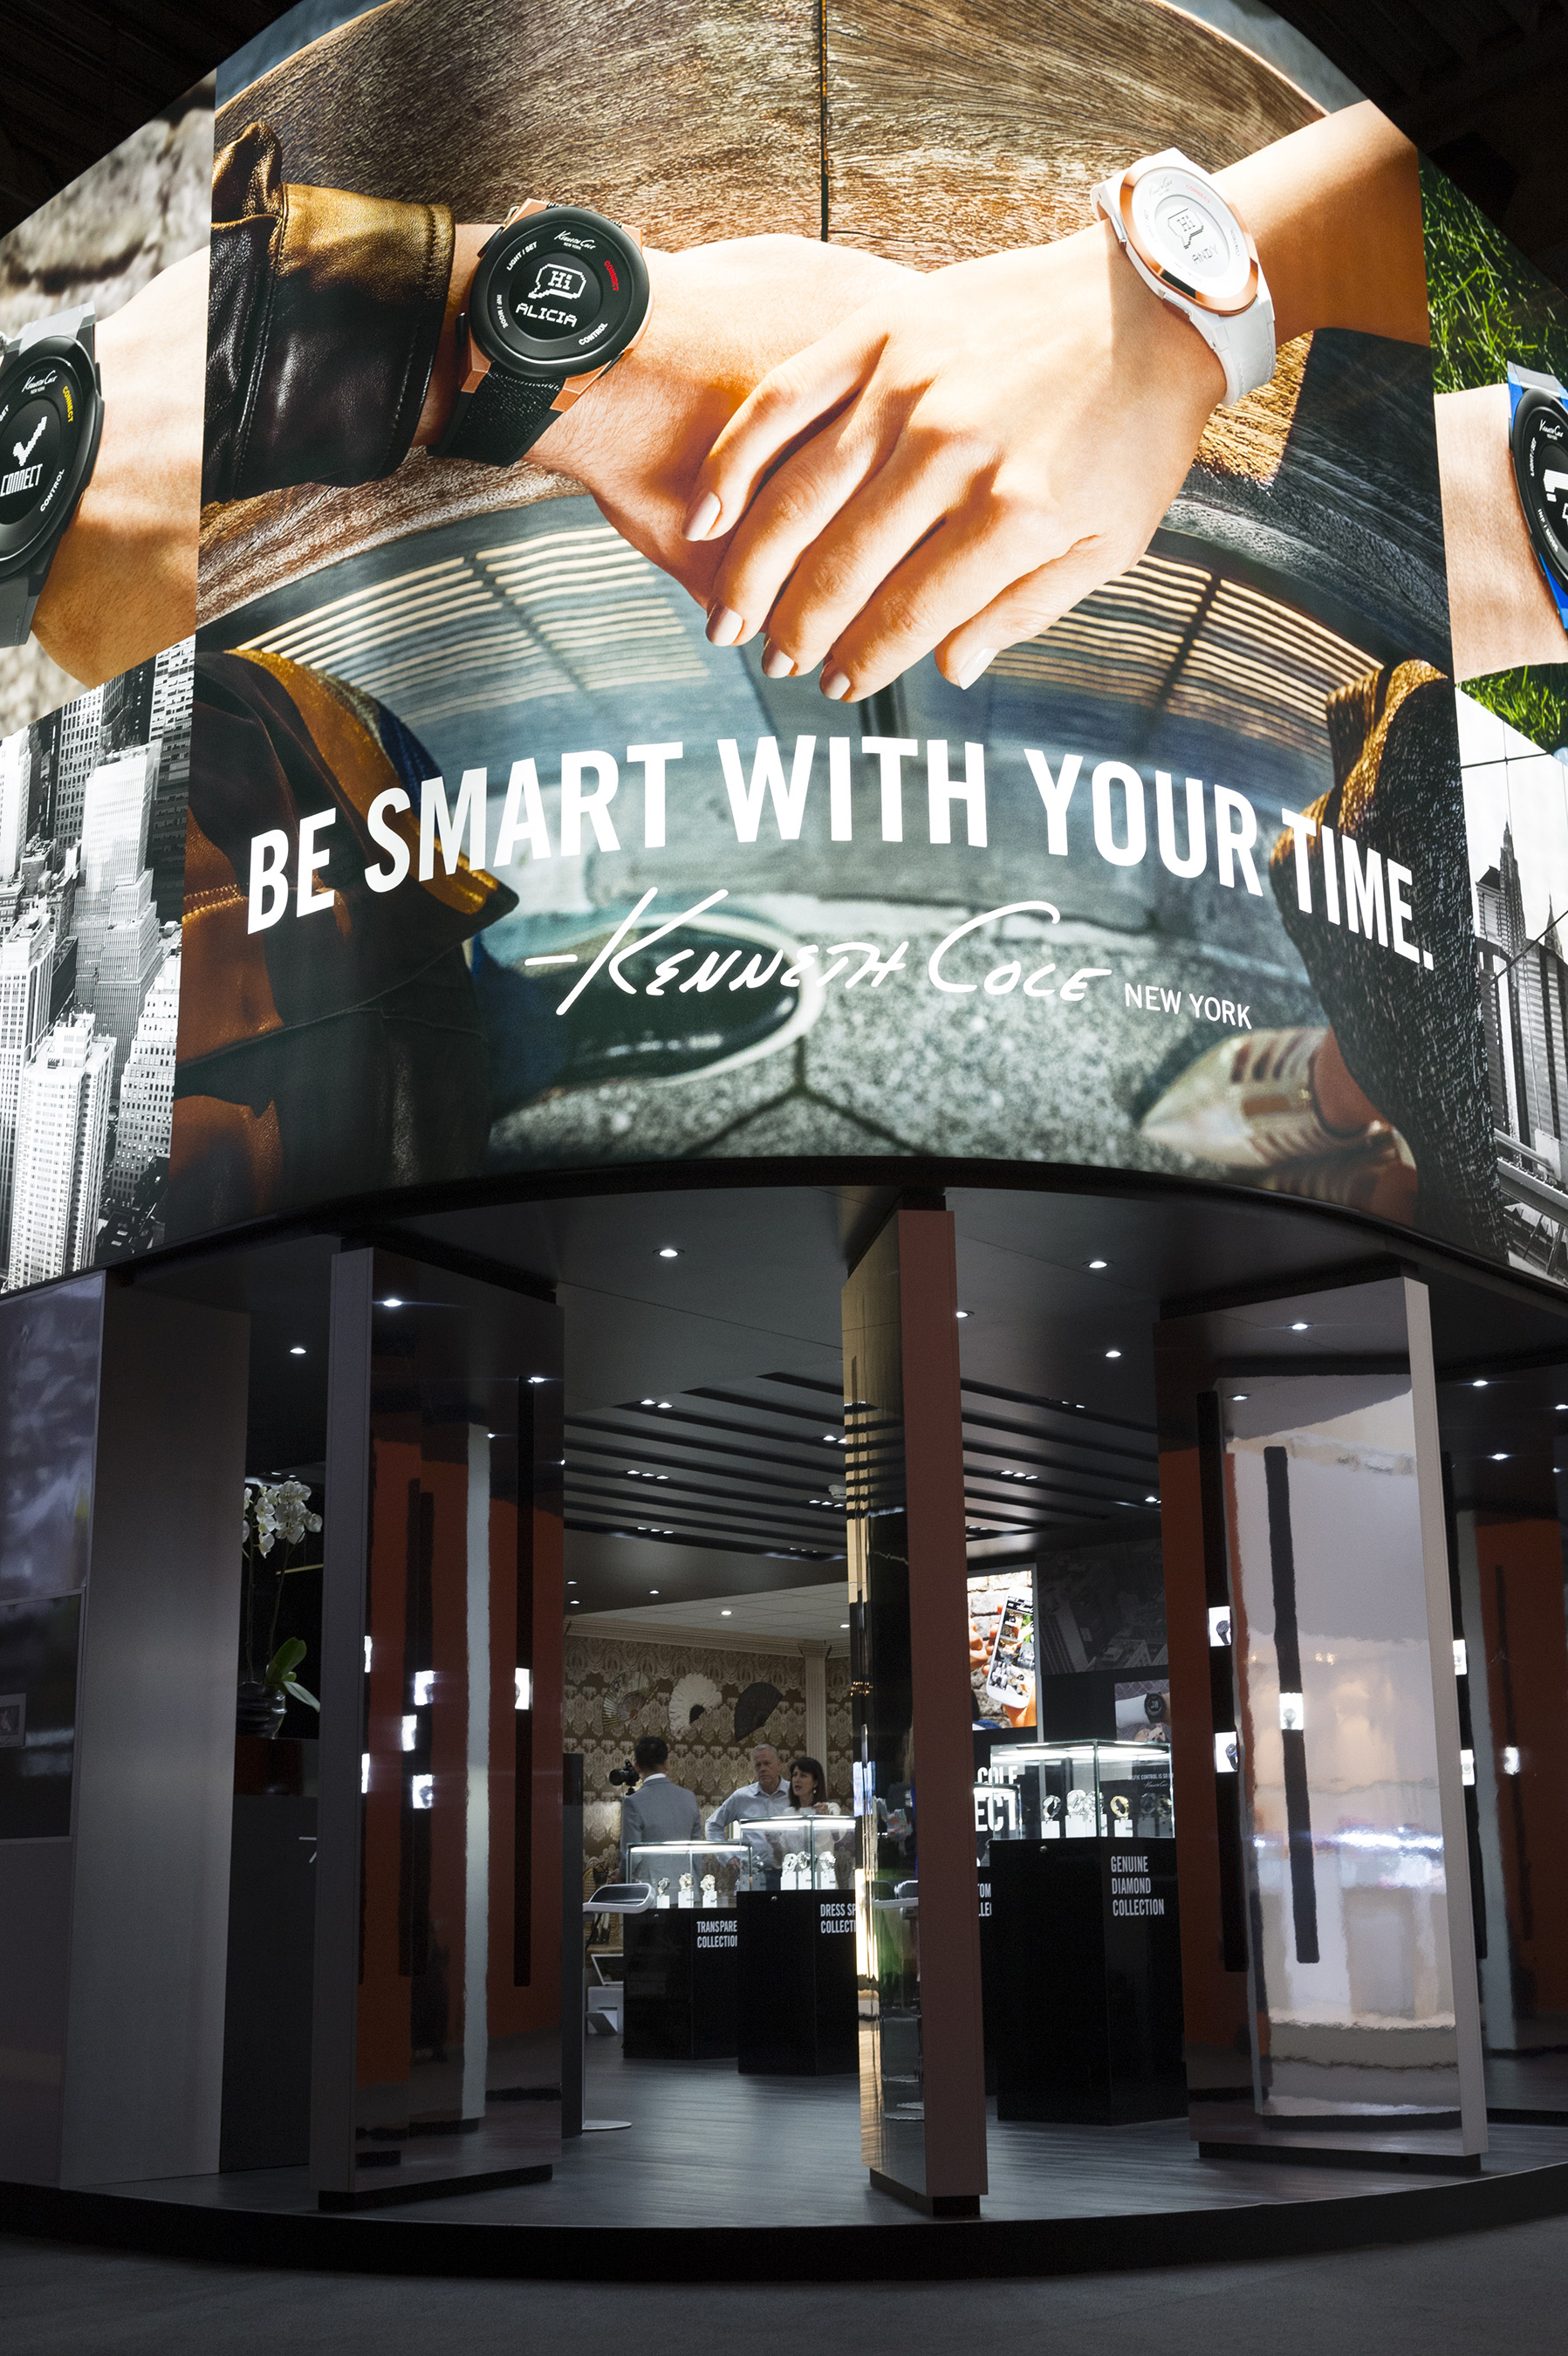 The Kenneth Cole Connect�-themed booth at Baselworld. The Kenneth Cole Connect� smart watches were first introduced to the world at the international watch and jewelry tradeshow in March.